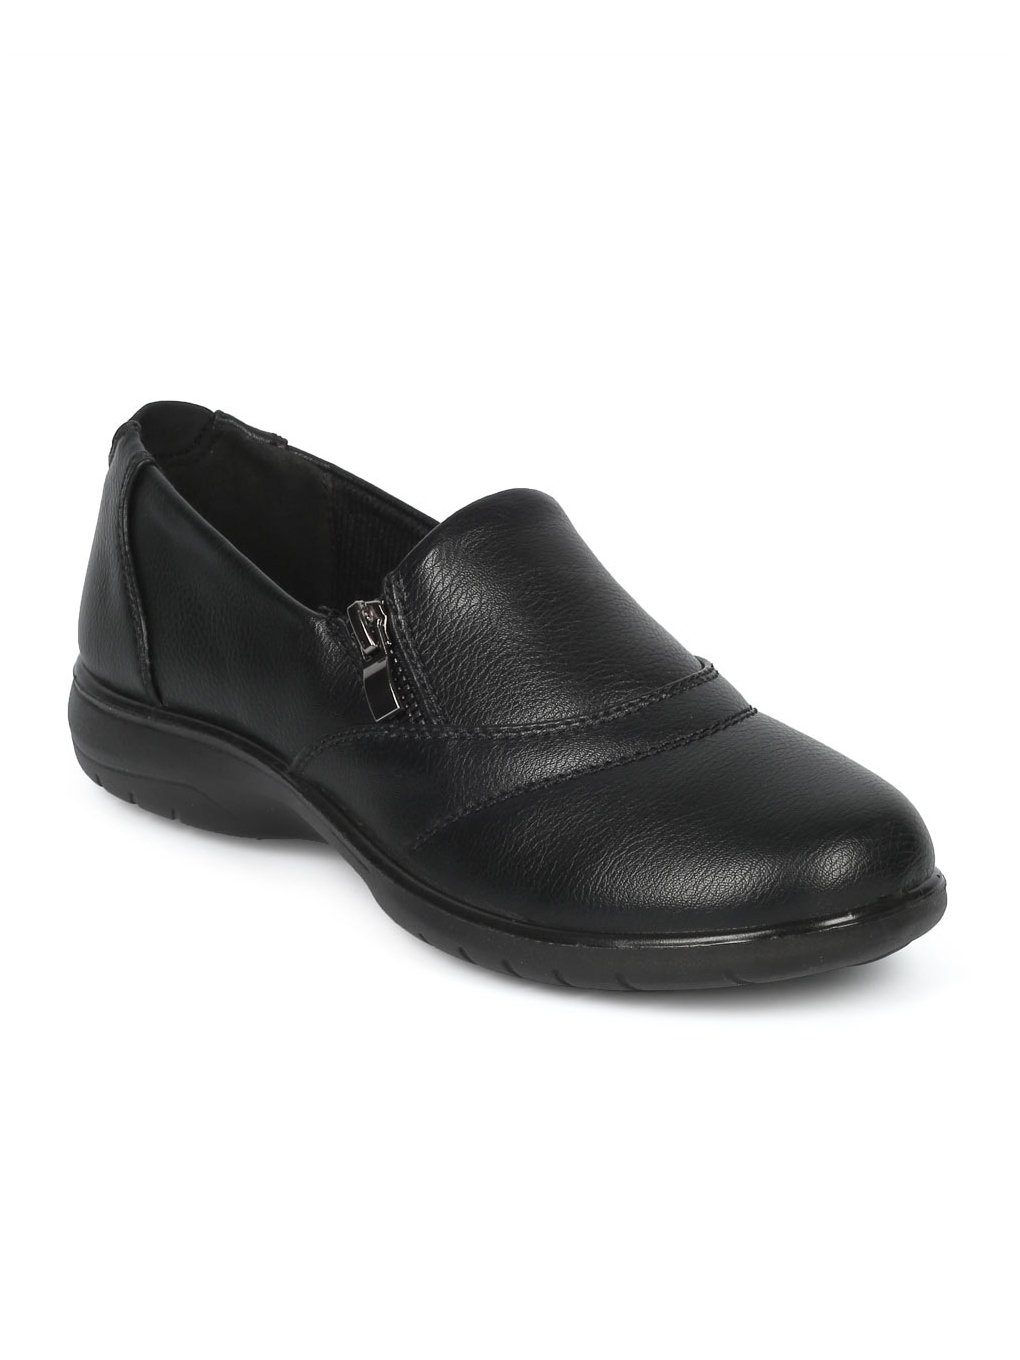 Alrisco Women Leatherette Round Toe Elevated Heel Work Loafer HD92 - Black Leatherette (Size: 7.0)